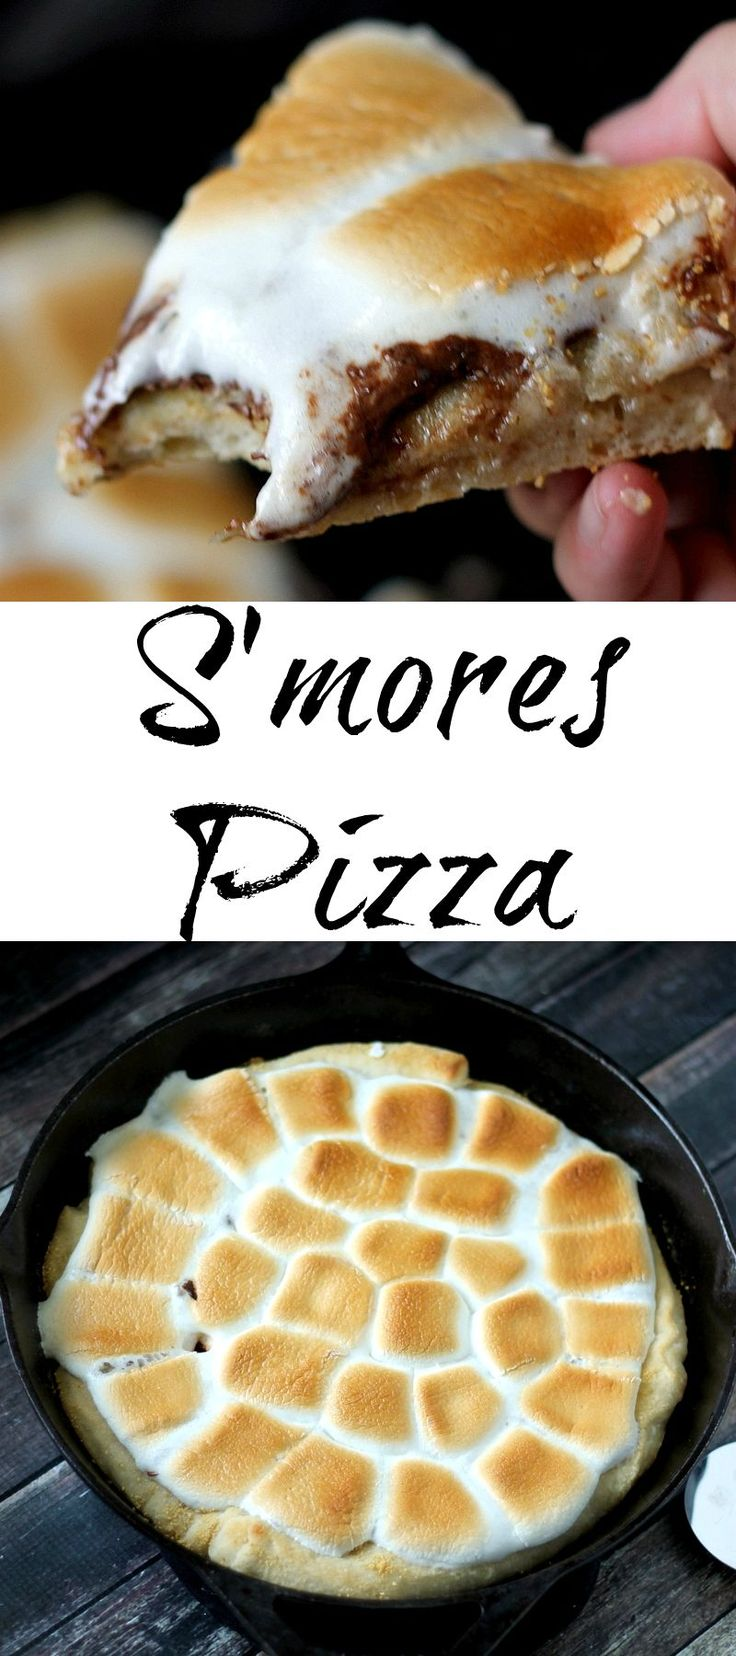 S'mores Pizza is the perfect dessert. It is easy to make and everyone will be begging for a piece!